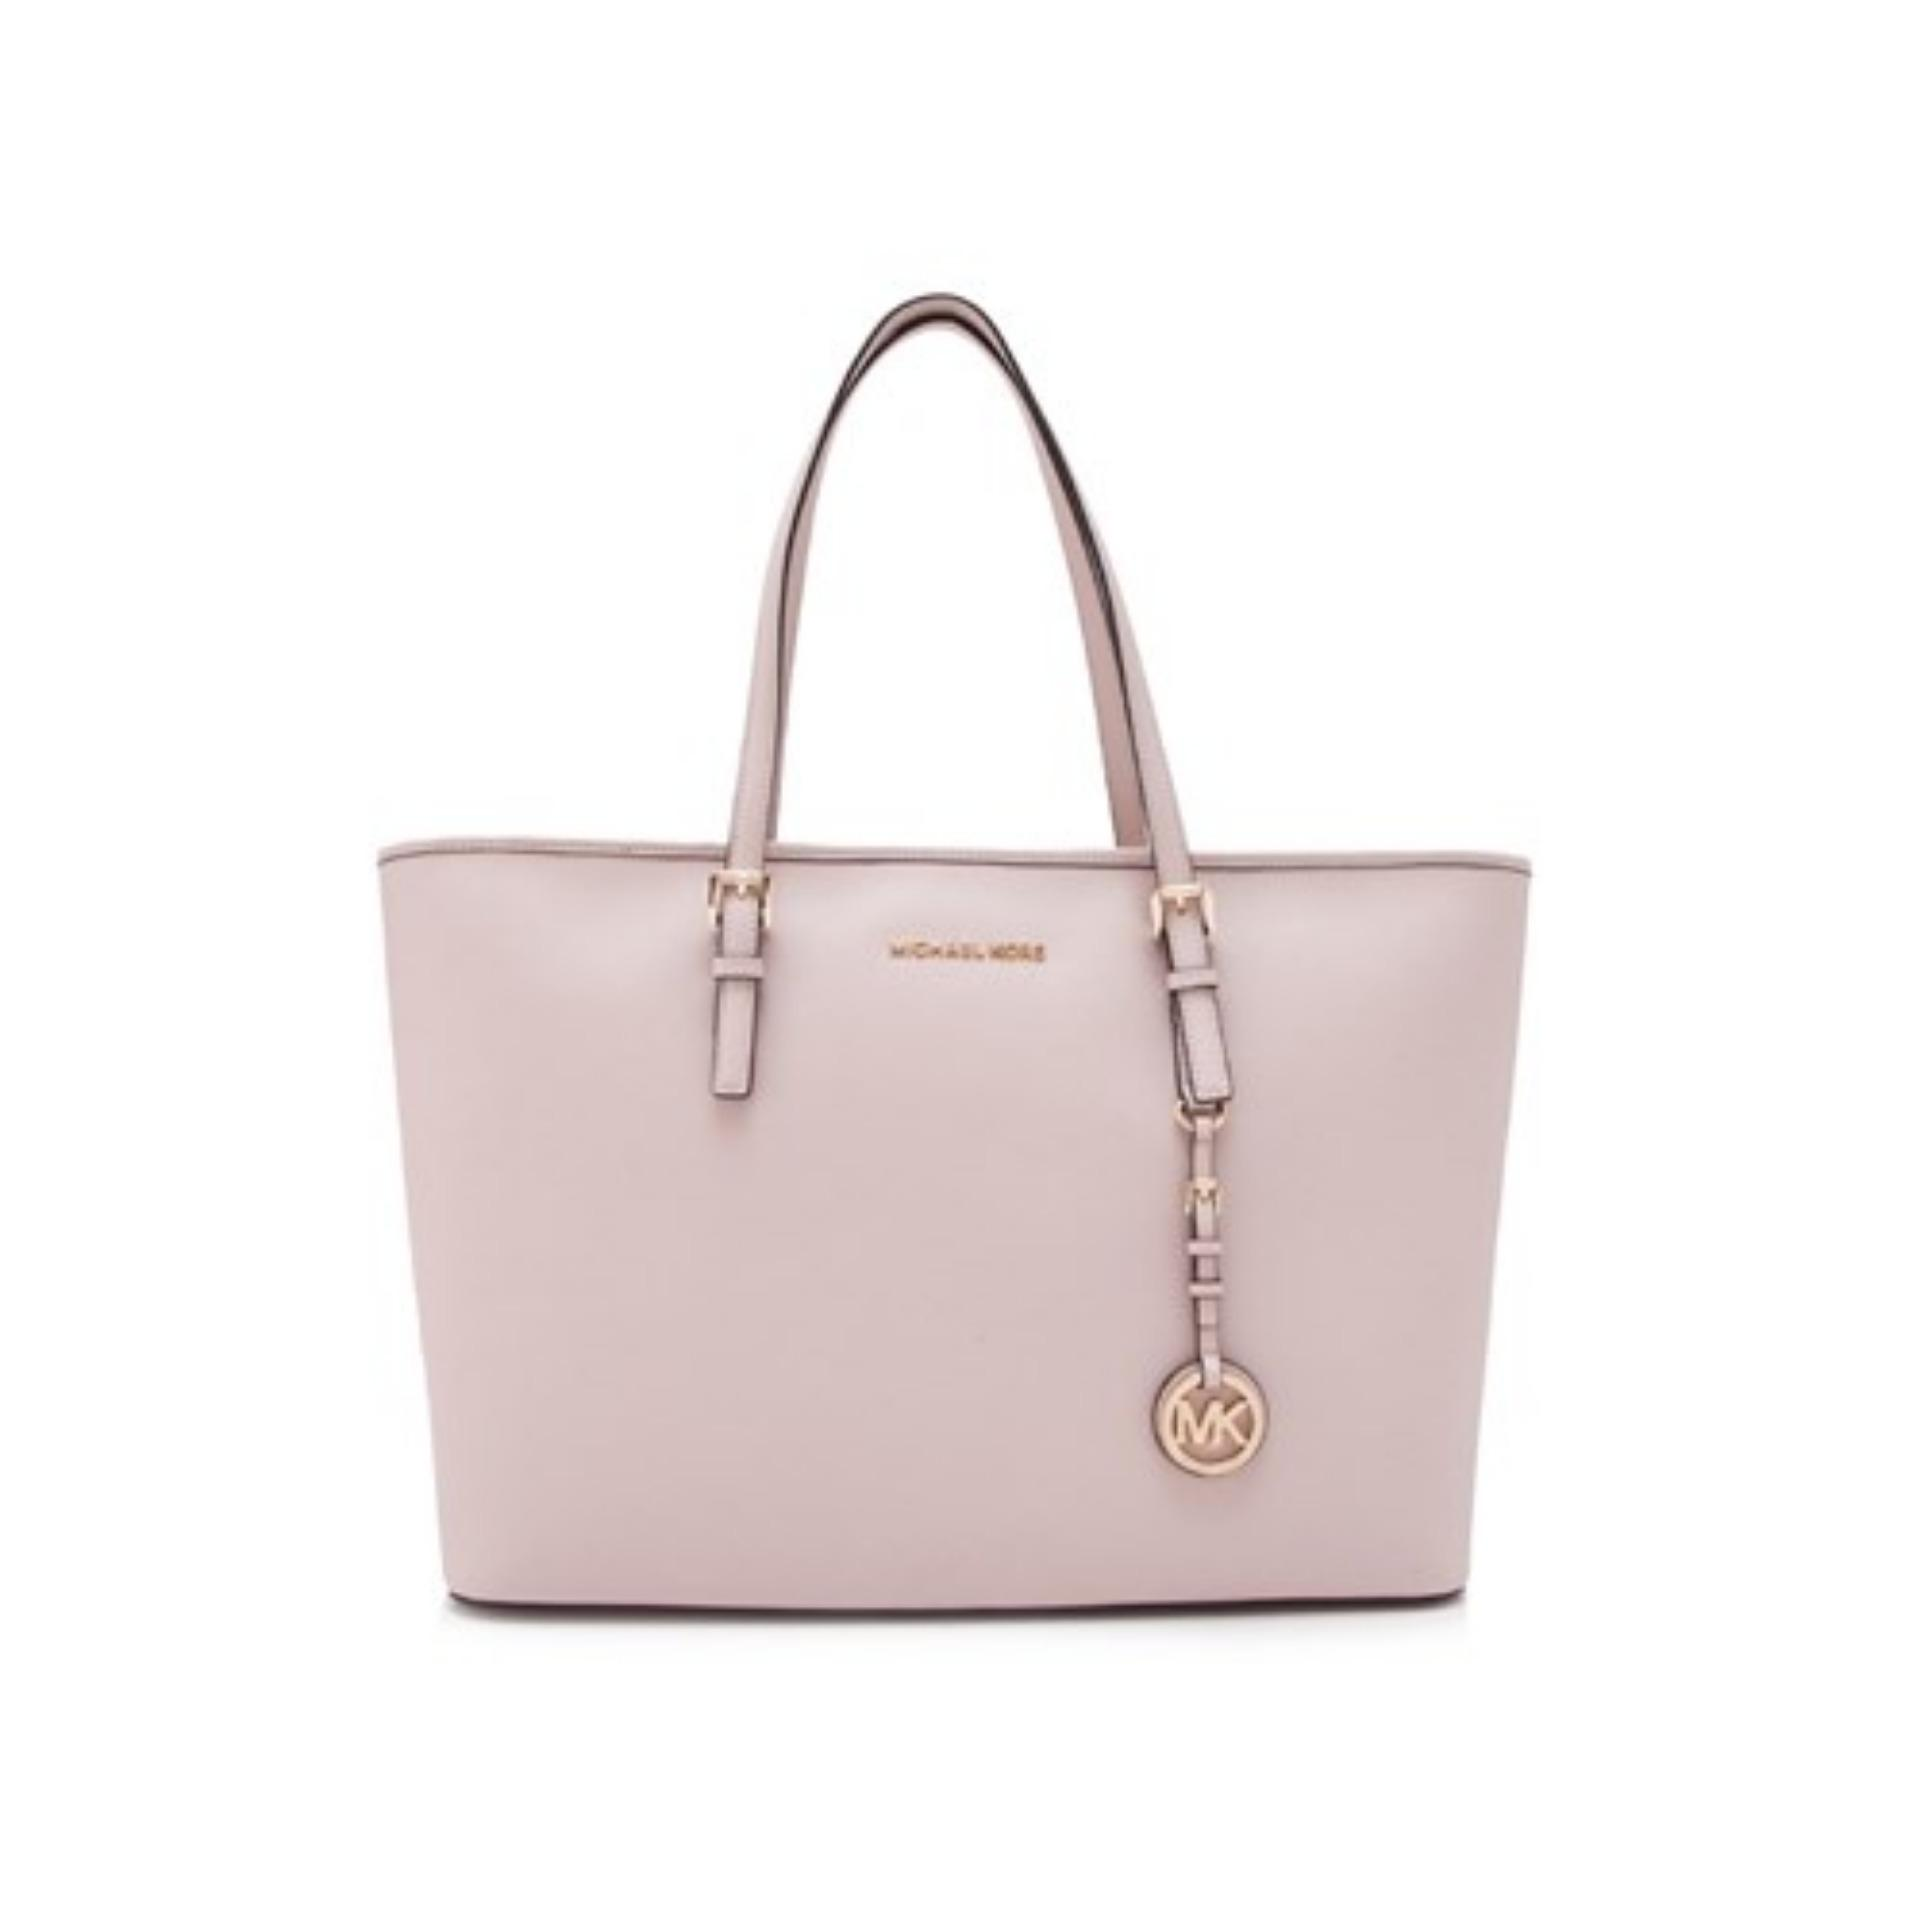 2c44a0263cff Michael Kors Jet Set Travel Gold Tone Medium Top Multifunctional Tote Bag (Soft  Pink)